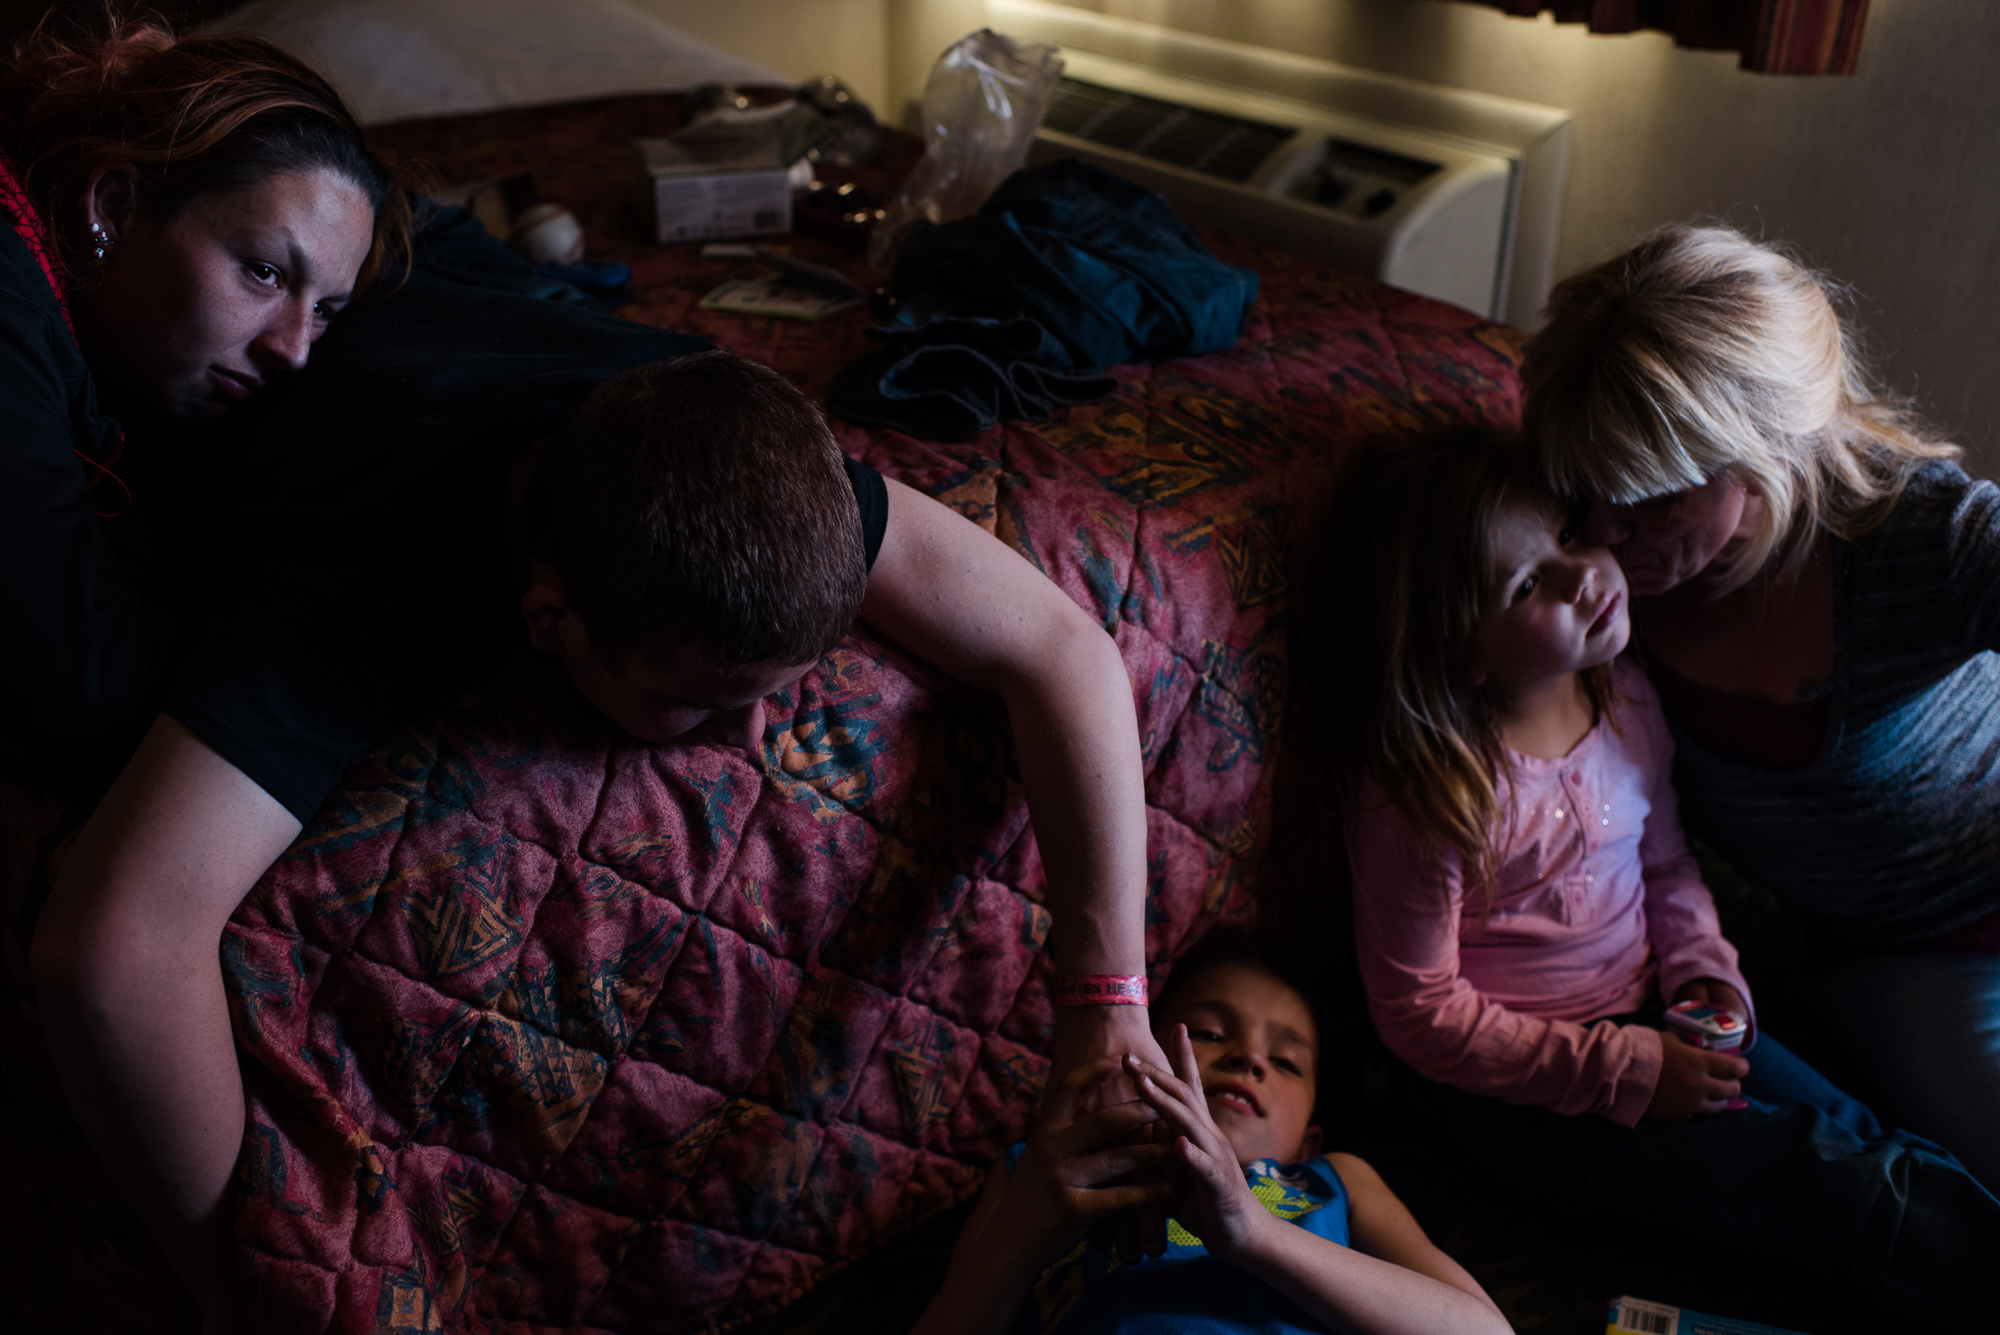 Vinny, age 16, tickles Michael, age 10, while Krystle rests her head on Vinny's back; Eve sits with Elycia on the right side of the bed during a visit at Eddie's motel room where Elycia and Michael live, 2015.